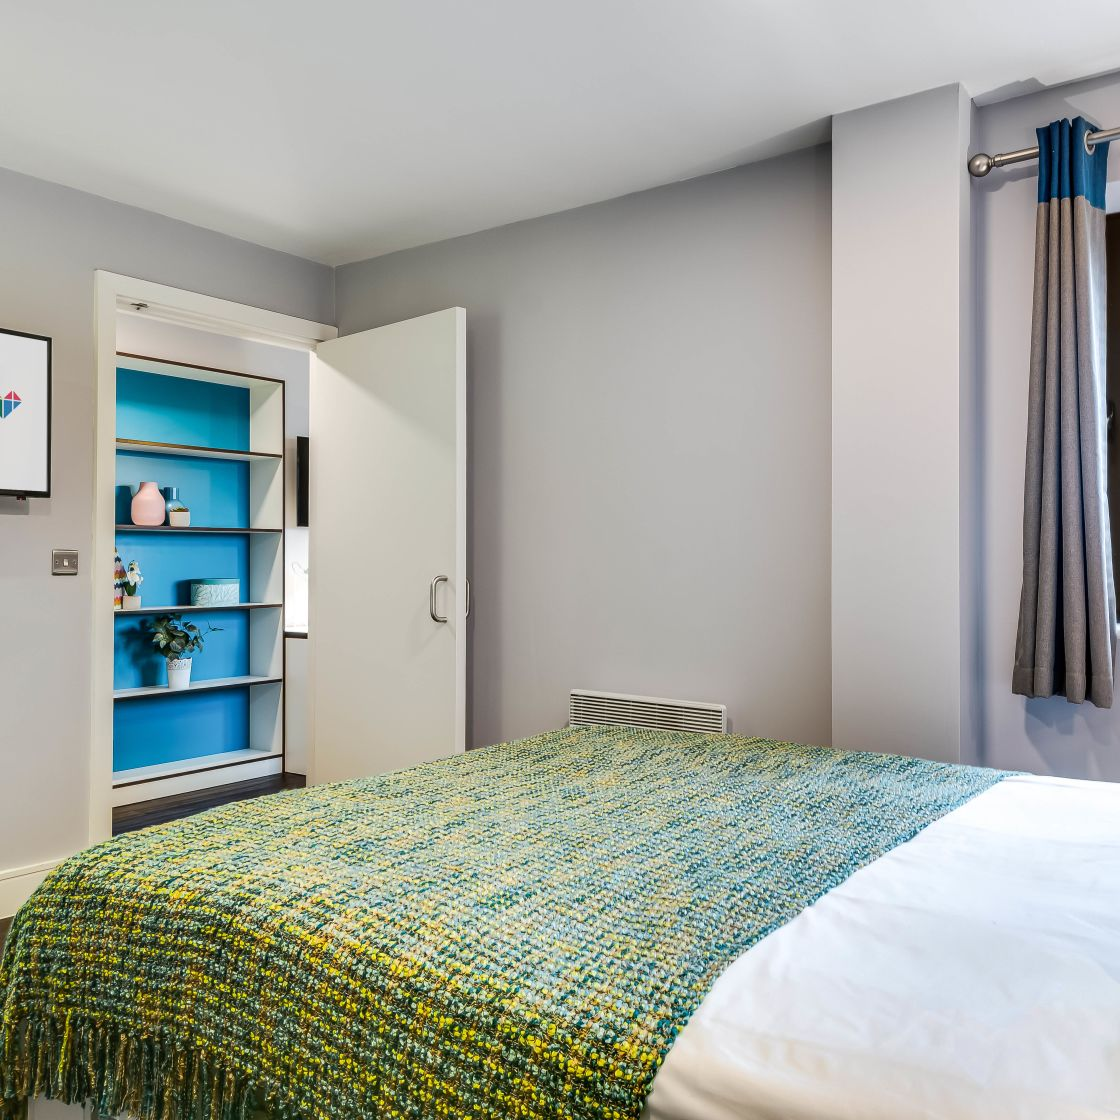 Grande Student Apartment in Leeds with King Size, and shelf storage. IconInc, The Edge